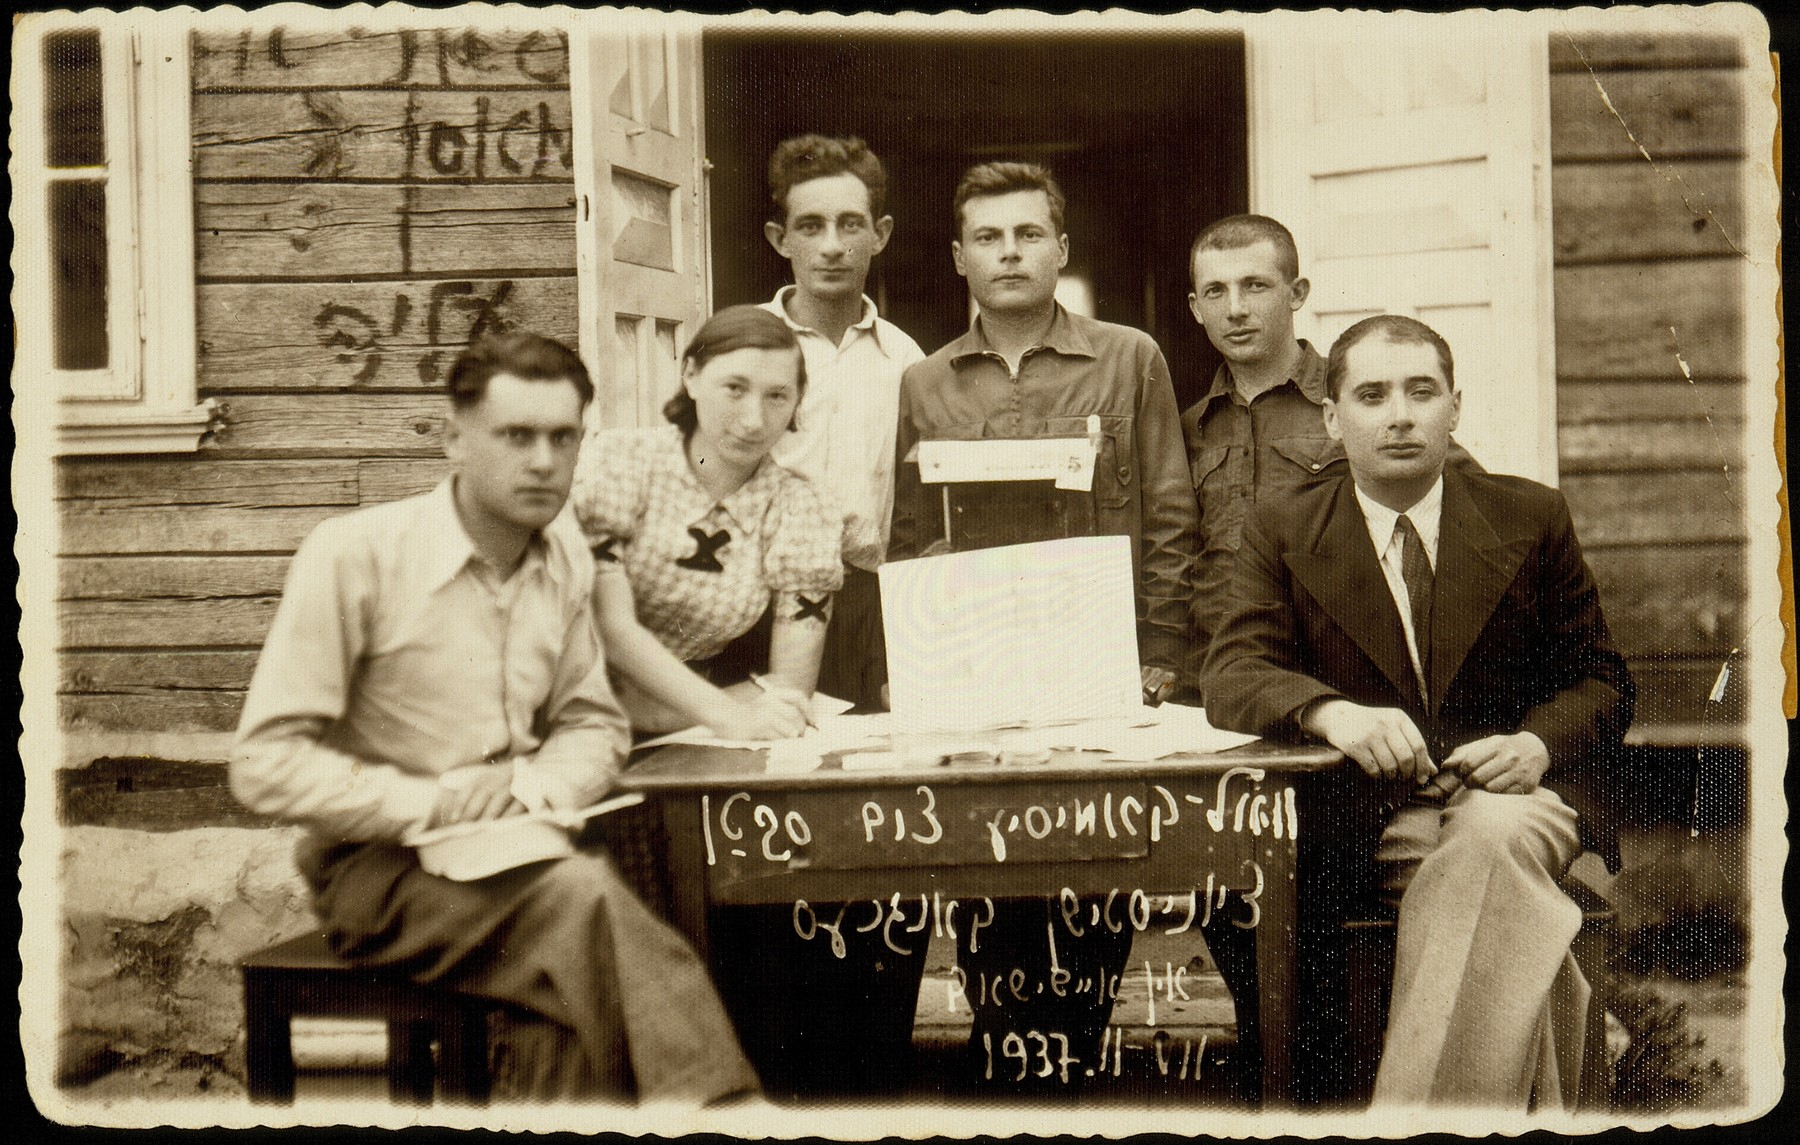 Six members of the election commission of Haoved Hatzioni in Eisiskes assist in fundraising for the 20th World Zionist Congress.    (from right to left) Eli Politacki, Shuster, Shalom Kahn, Israel Szczuczynski, Szeina Blacharowicz, and Yankl Levin.  They had hoped that the Congress would influence the British to open up Palestine for mass immigration.  None of the six was able to obtain an immigration certificate to Palestine.  Szeina survived the war in the forest; the others were murdered.